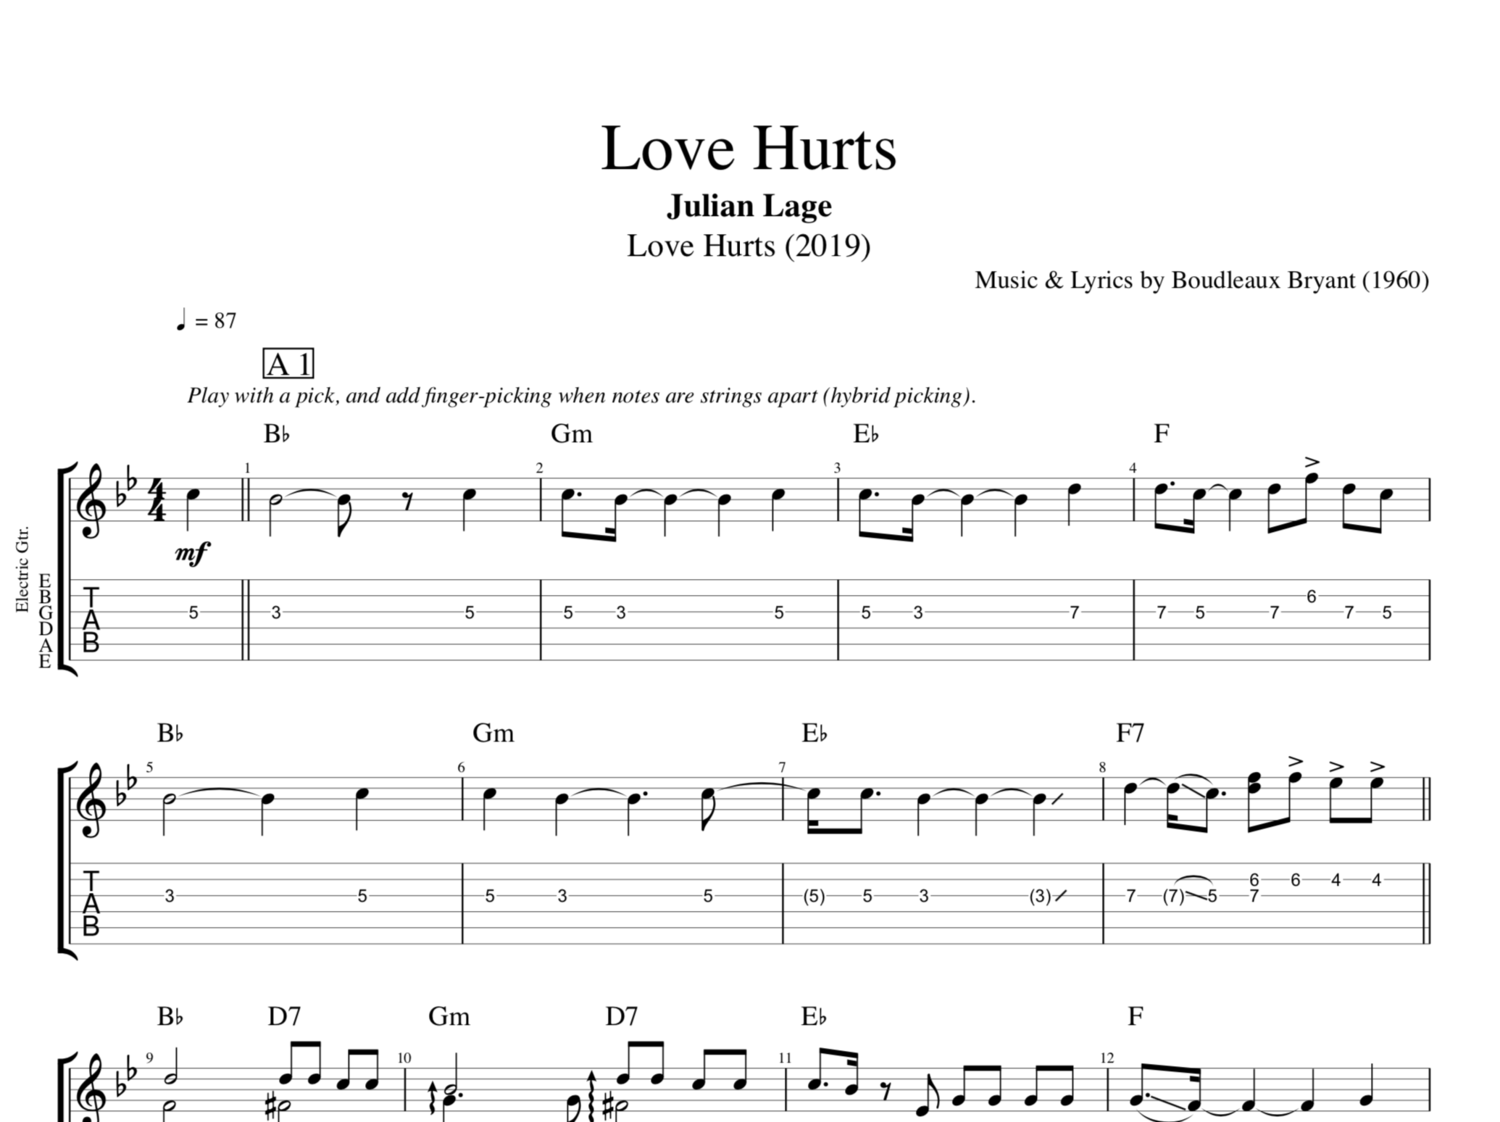 Love Hurts By Julian Lage Guitar Bass Tabs Sheet Music Chords Play Like The Greats Com